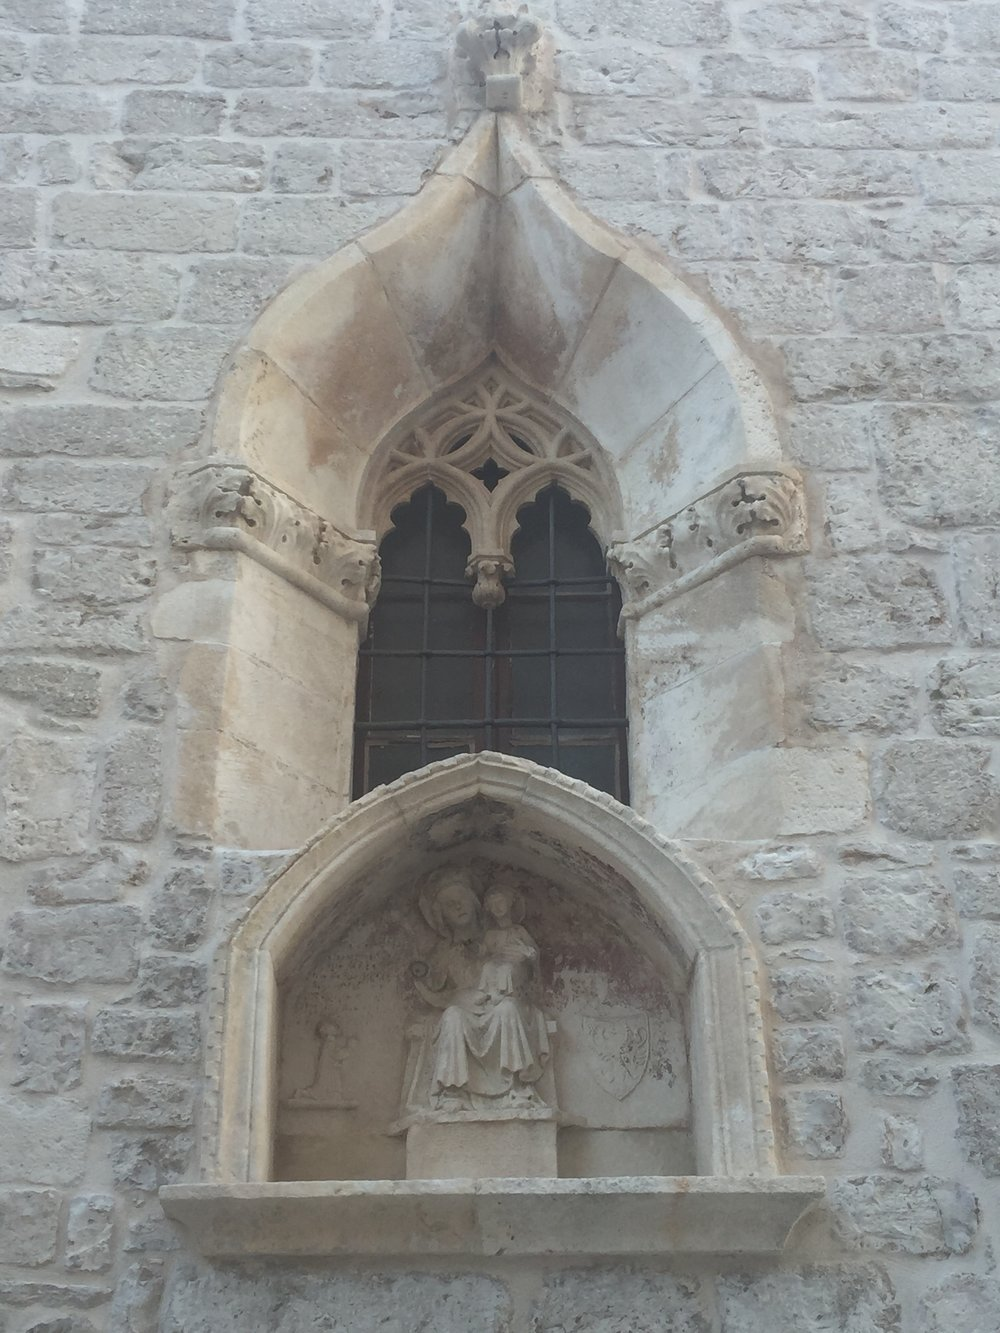 A detail on a patrician house in Šibenik. Notice the latticed window carving and cornichon. The white marble stone of Dalmatia was used in the construction of all Gothic, Romanesque, Renaissance and Baroque building.